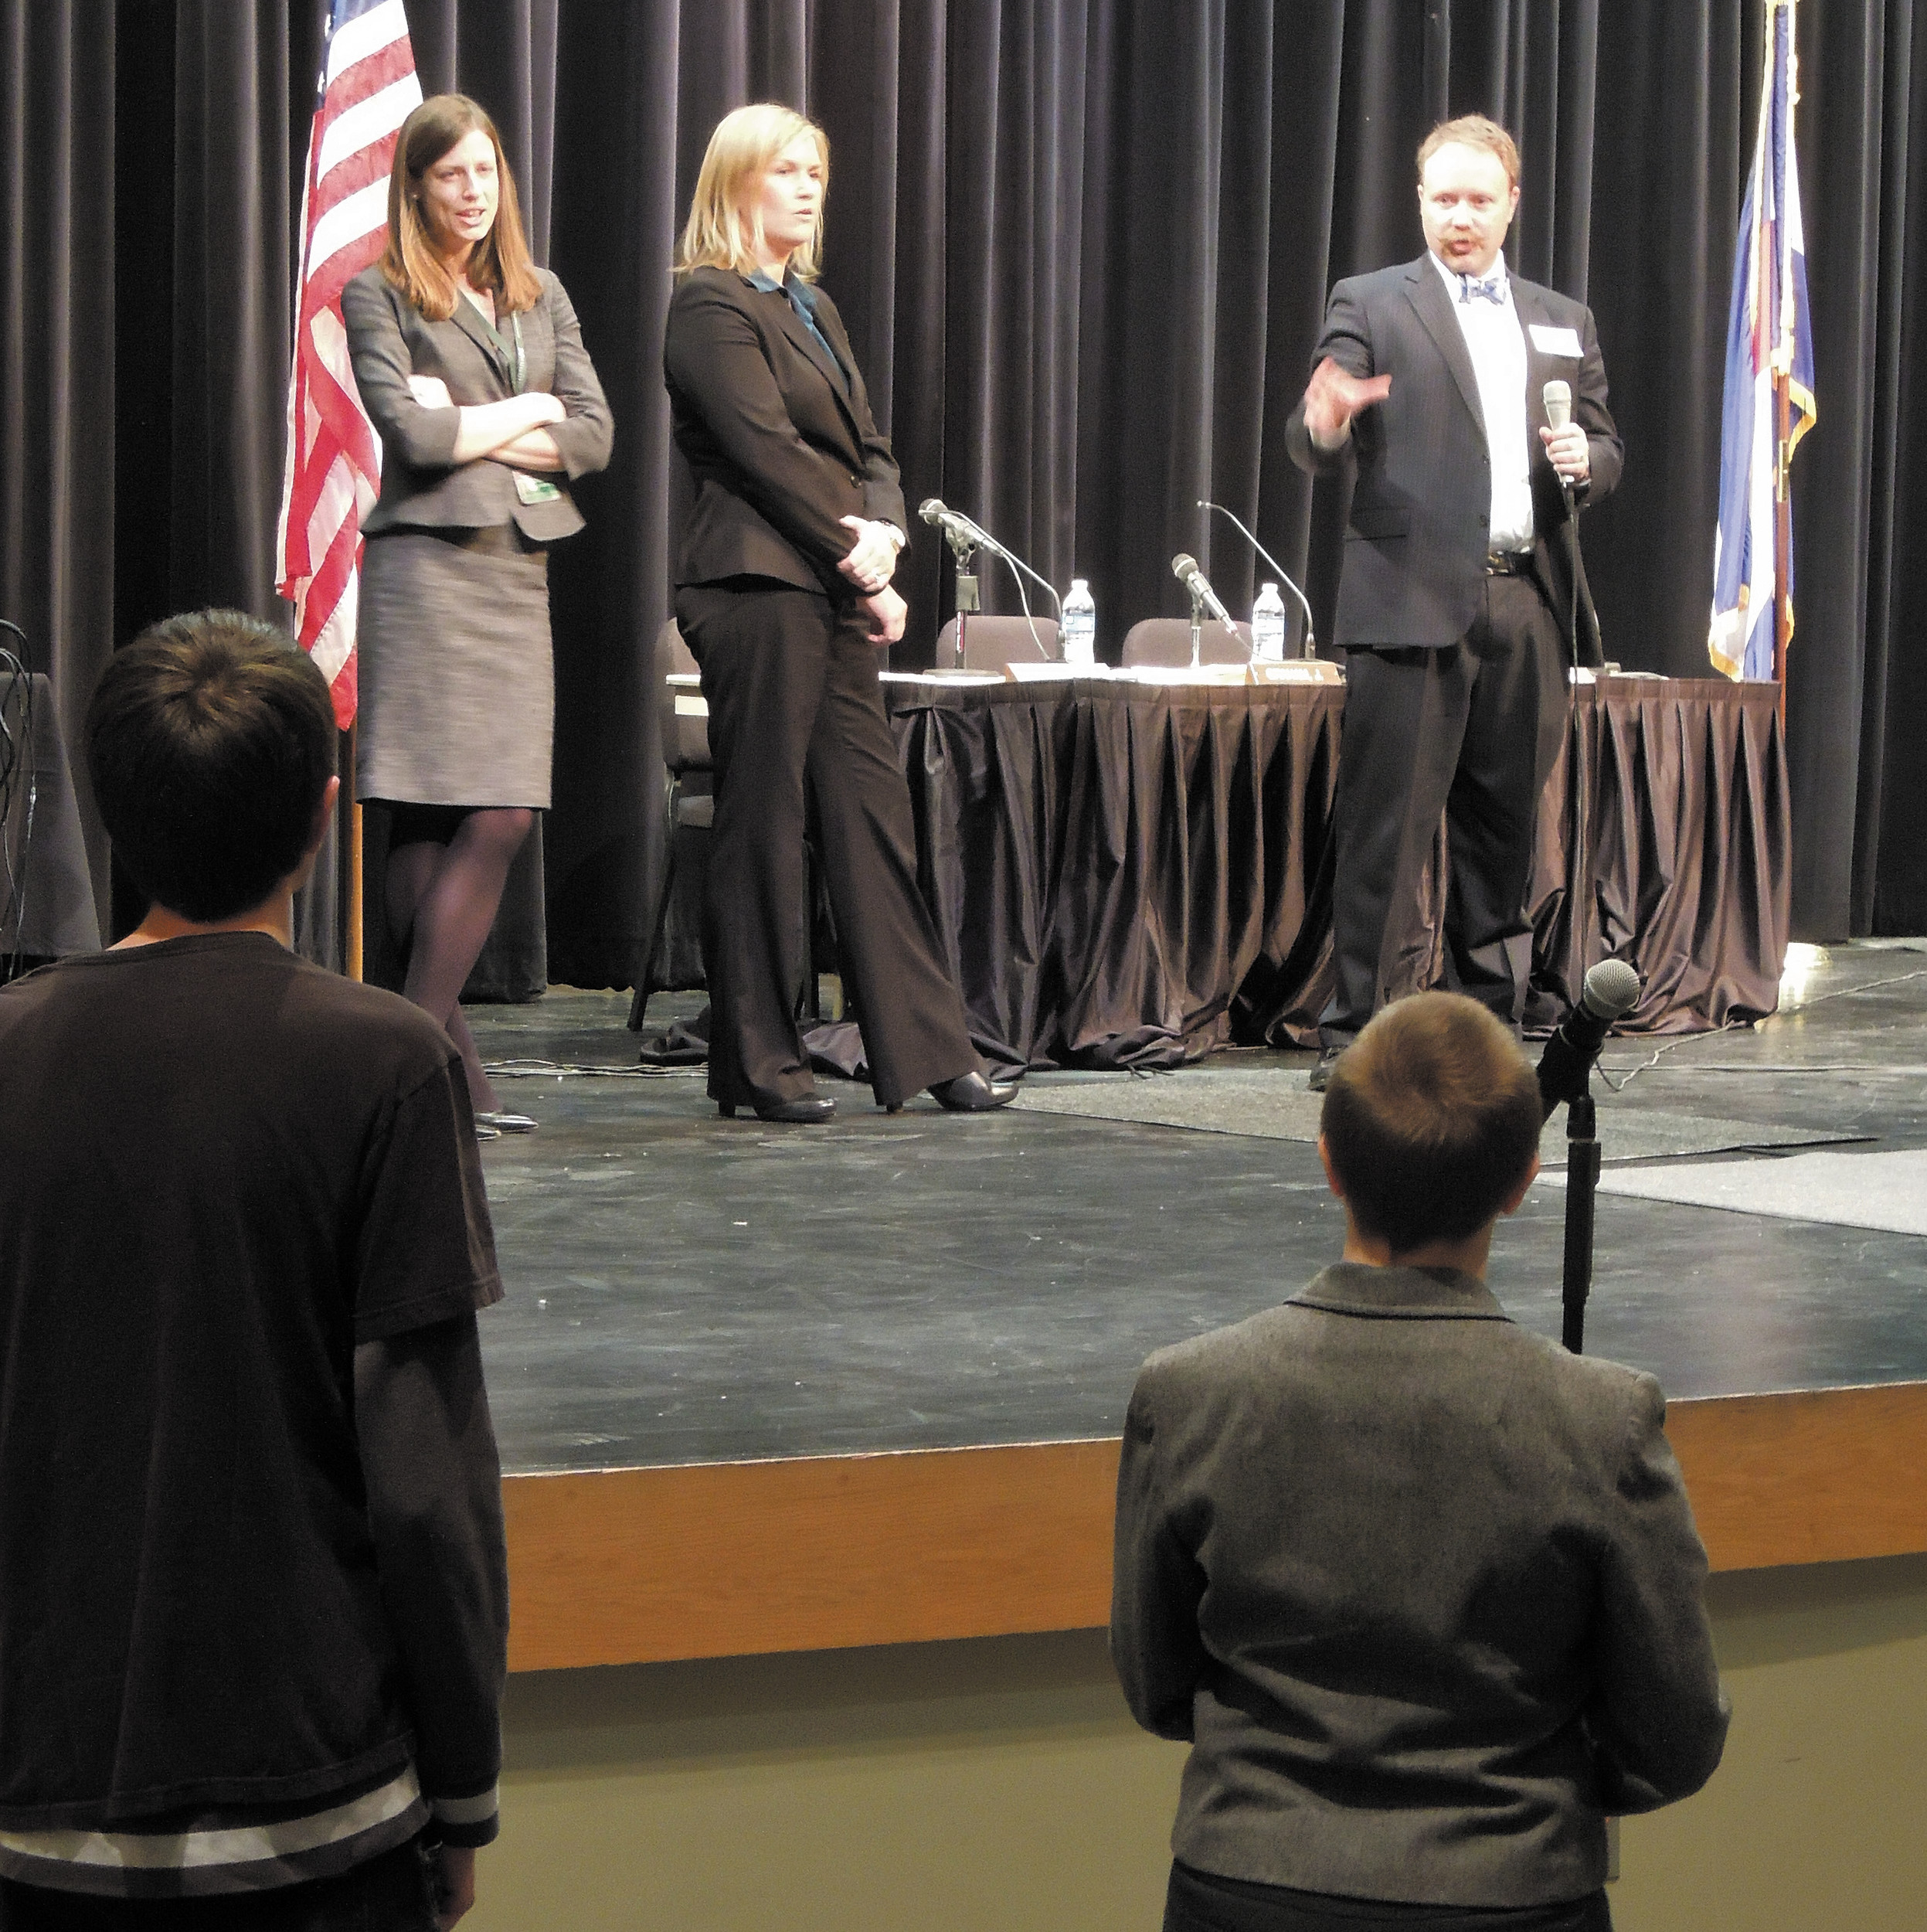 Rock Canyon High School students listen as Colorado Court of Apeals baliff Matthew Skeen answers a question. To his left are attorneys Meredith Van Horn  and assistant attorney general Jenny Campos, who presented cases at the school. Photo by Jane Reuter